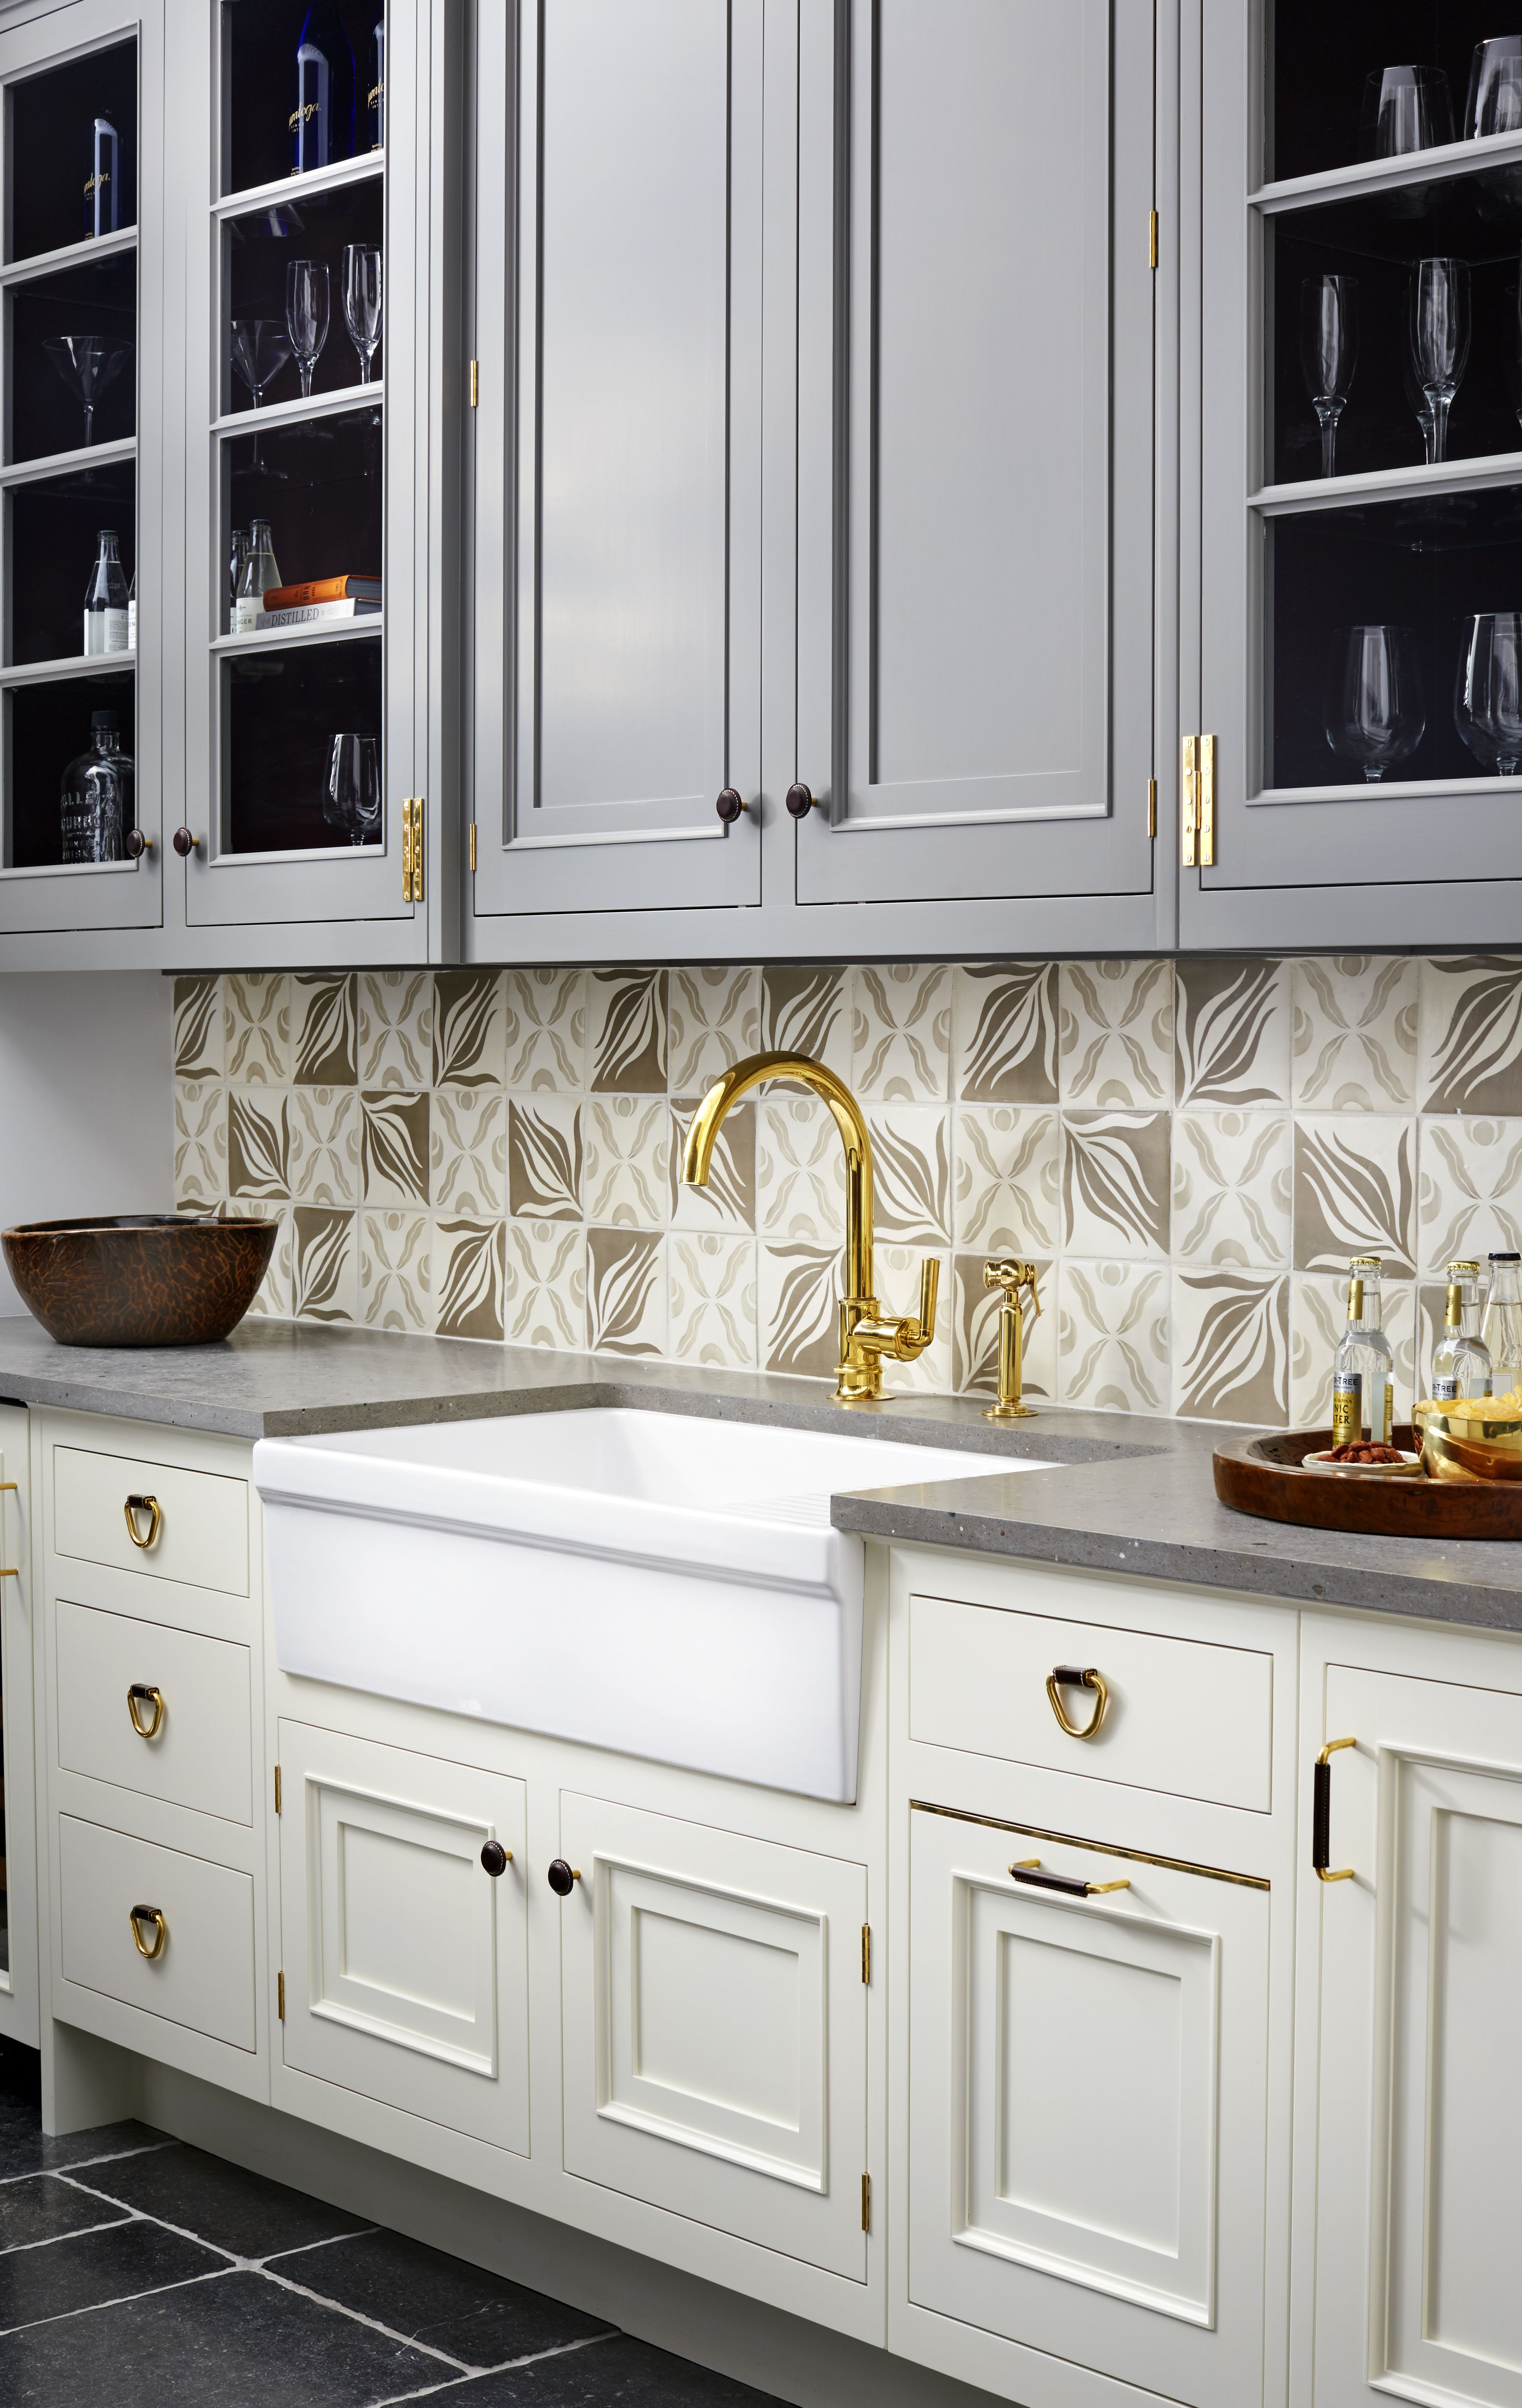 Henry Gooseneck Kitchen Faucet with Lever Handle and Spray | Henry ...